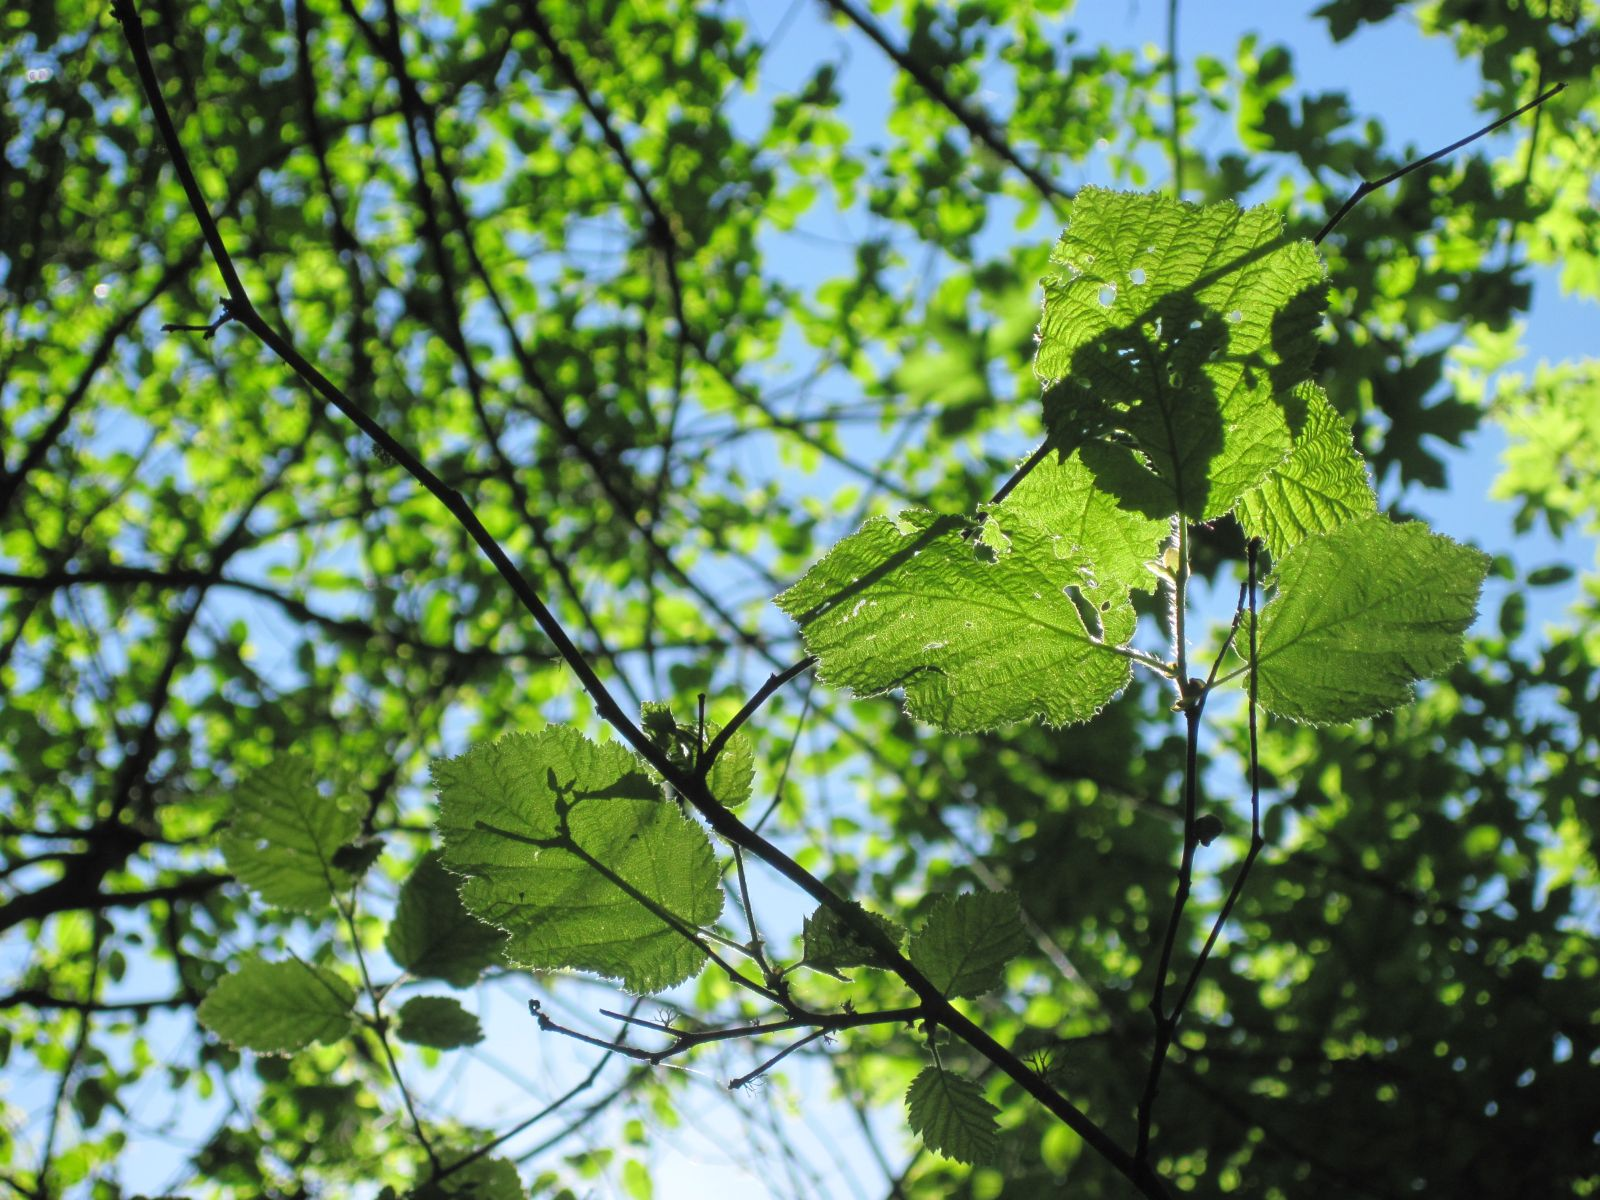 Hazelnut leaves illuminated in the sun-dappled forest